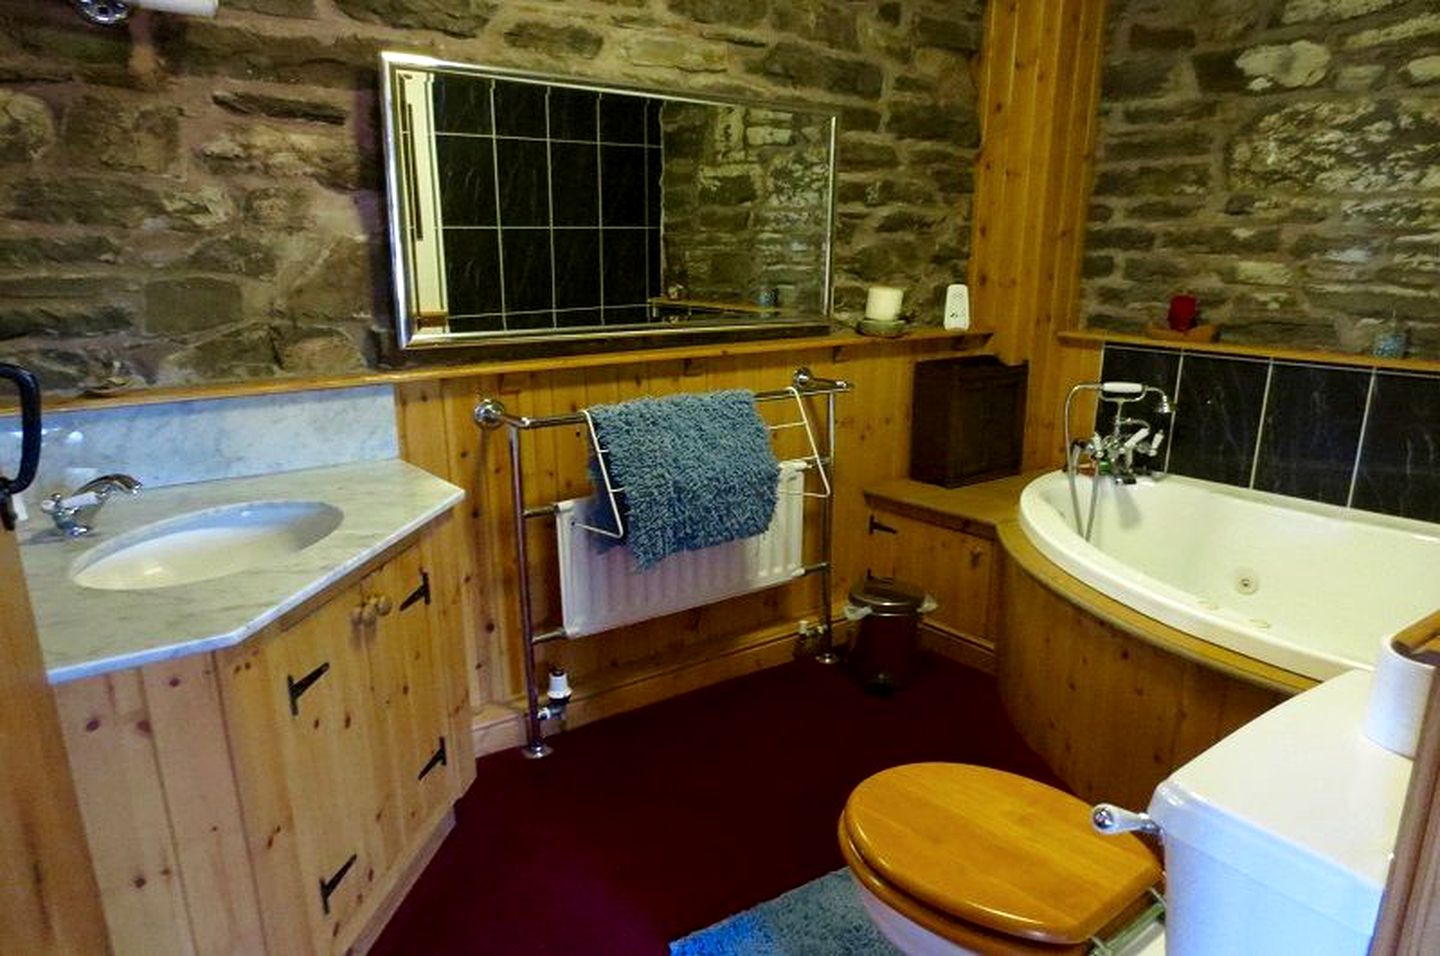 Cottage Rental With Hot Tub Near Knighton Wales